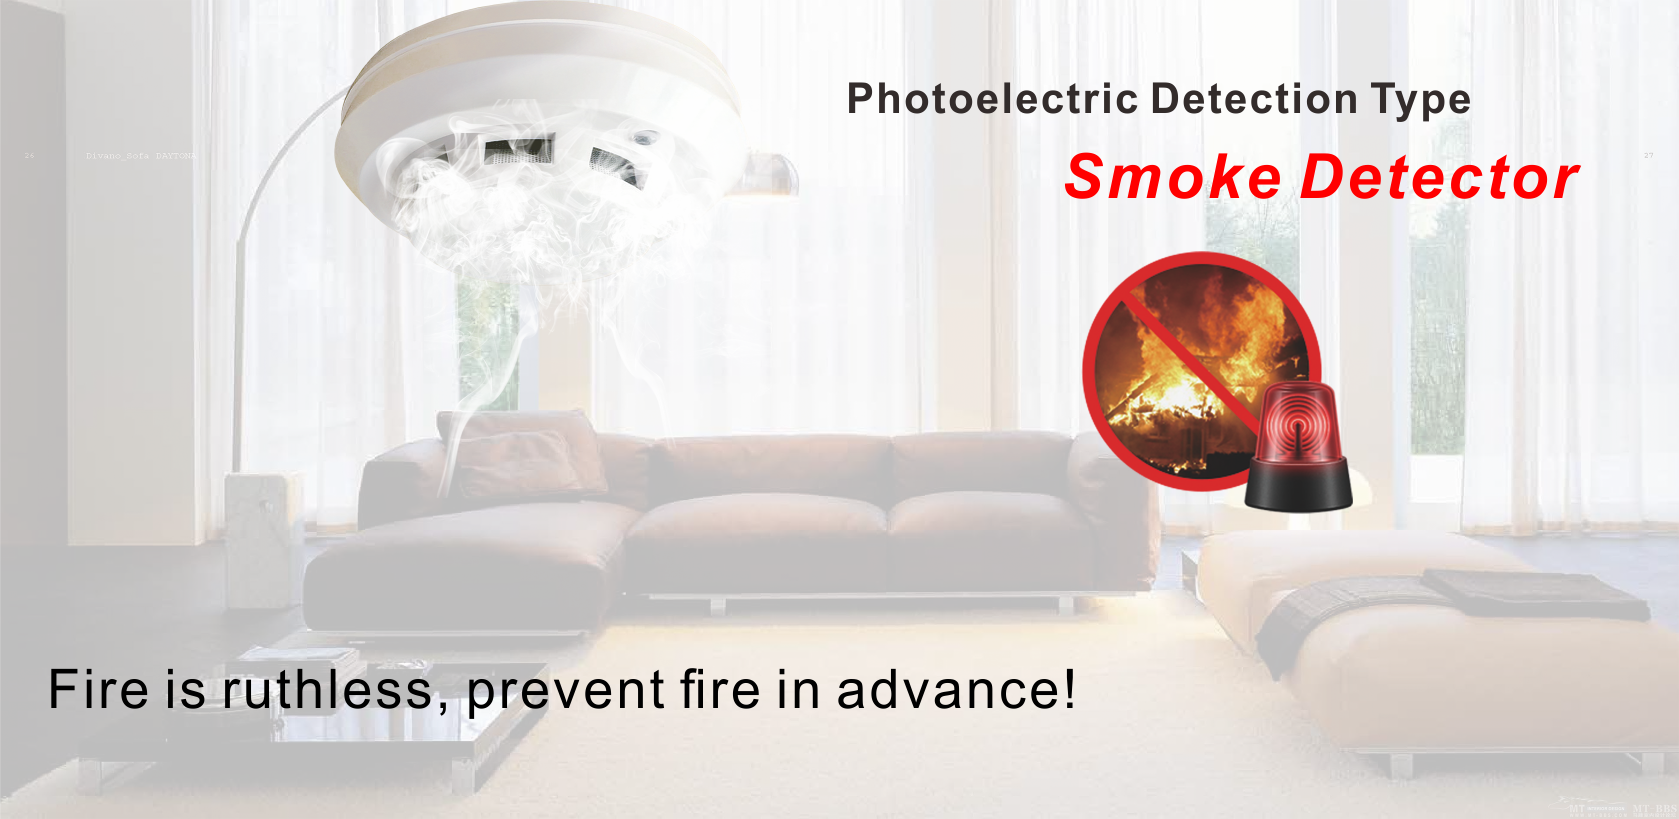 AS-603PC Photoelectric Smoke Detector 1